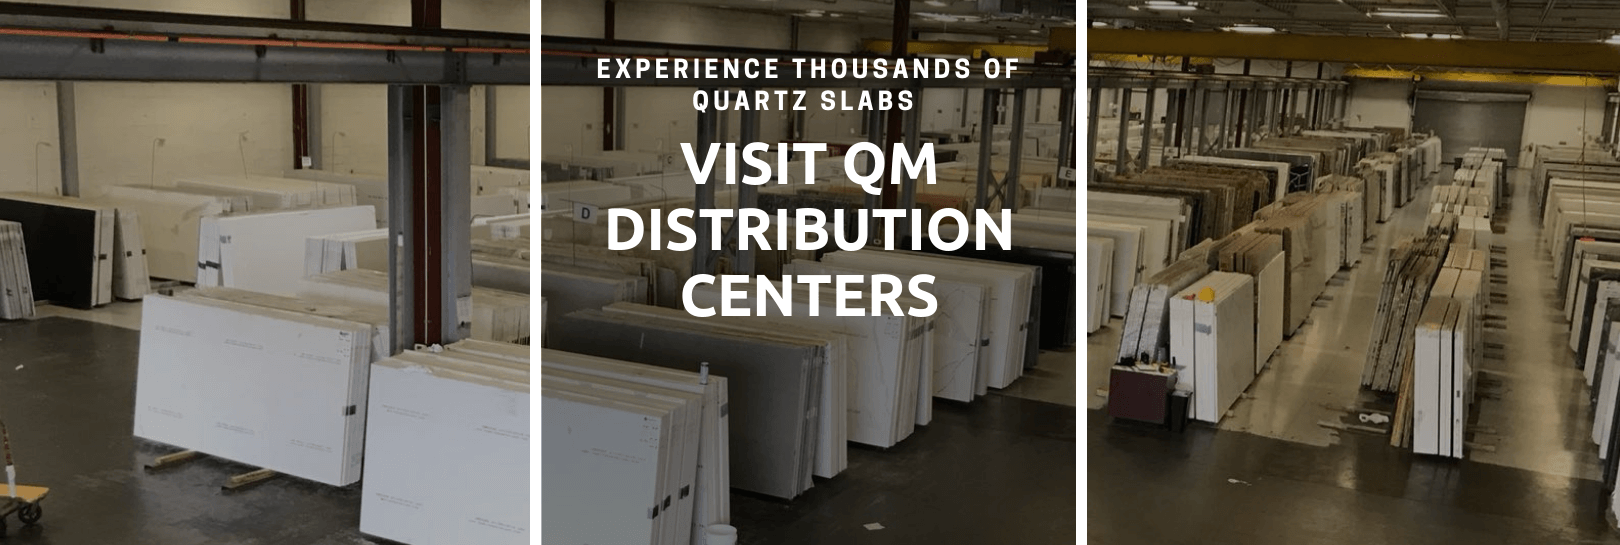 Distribution Centers banner